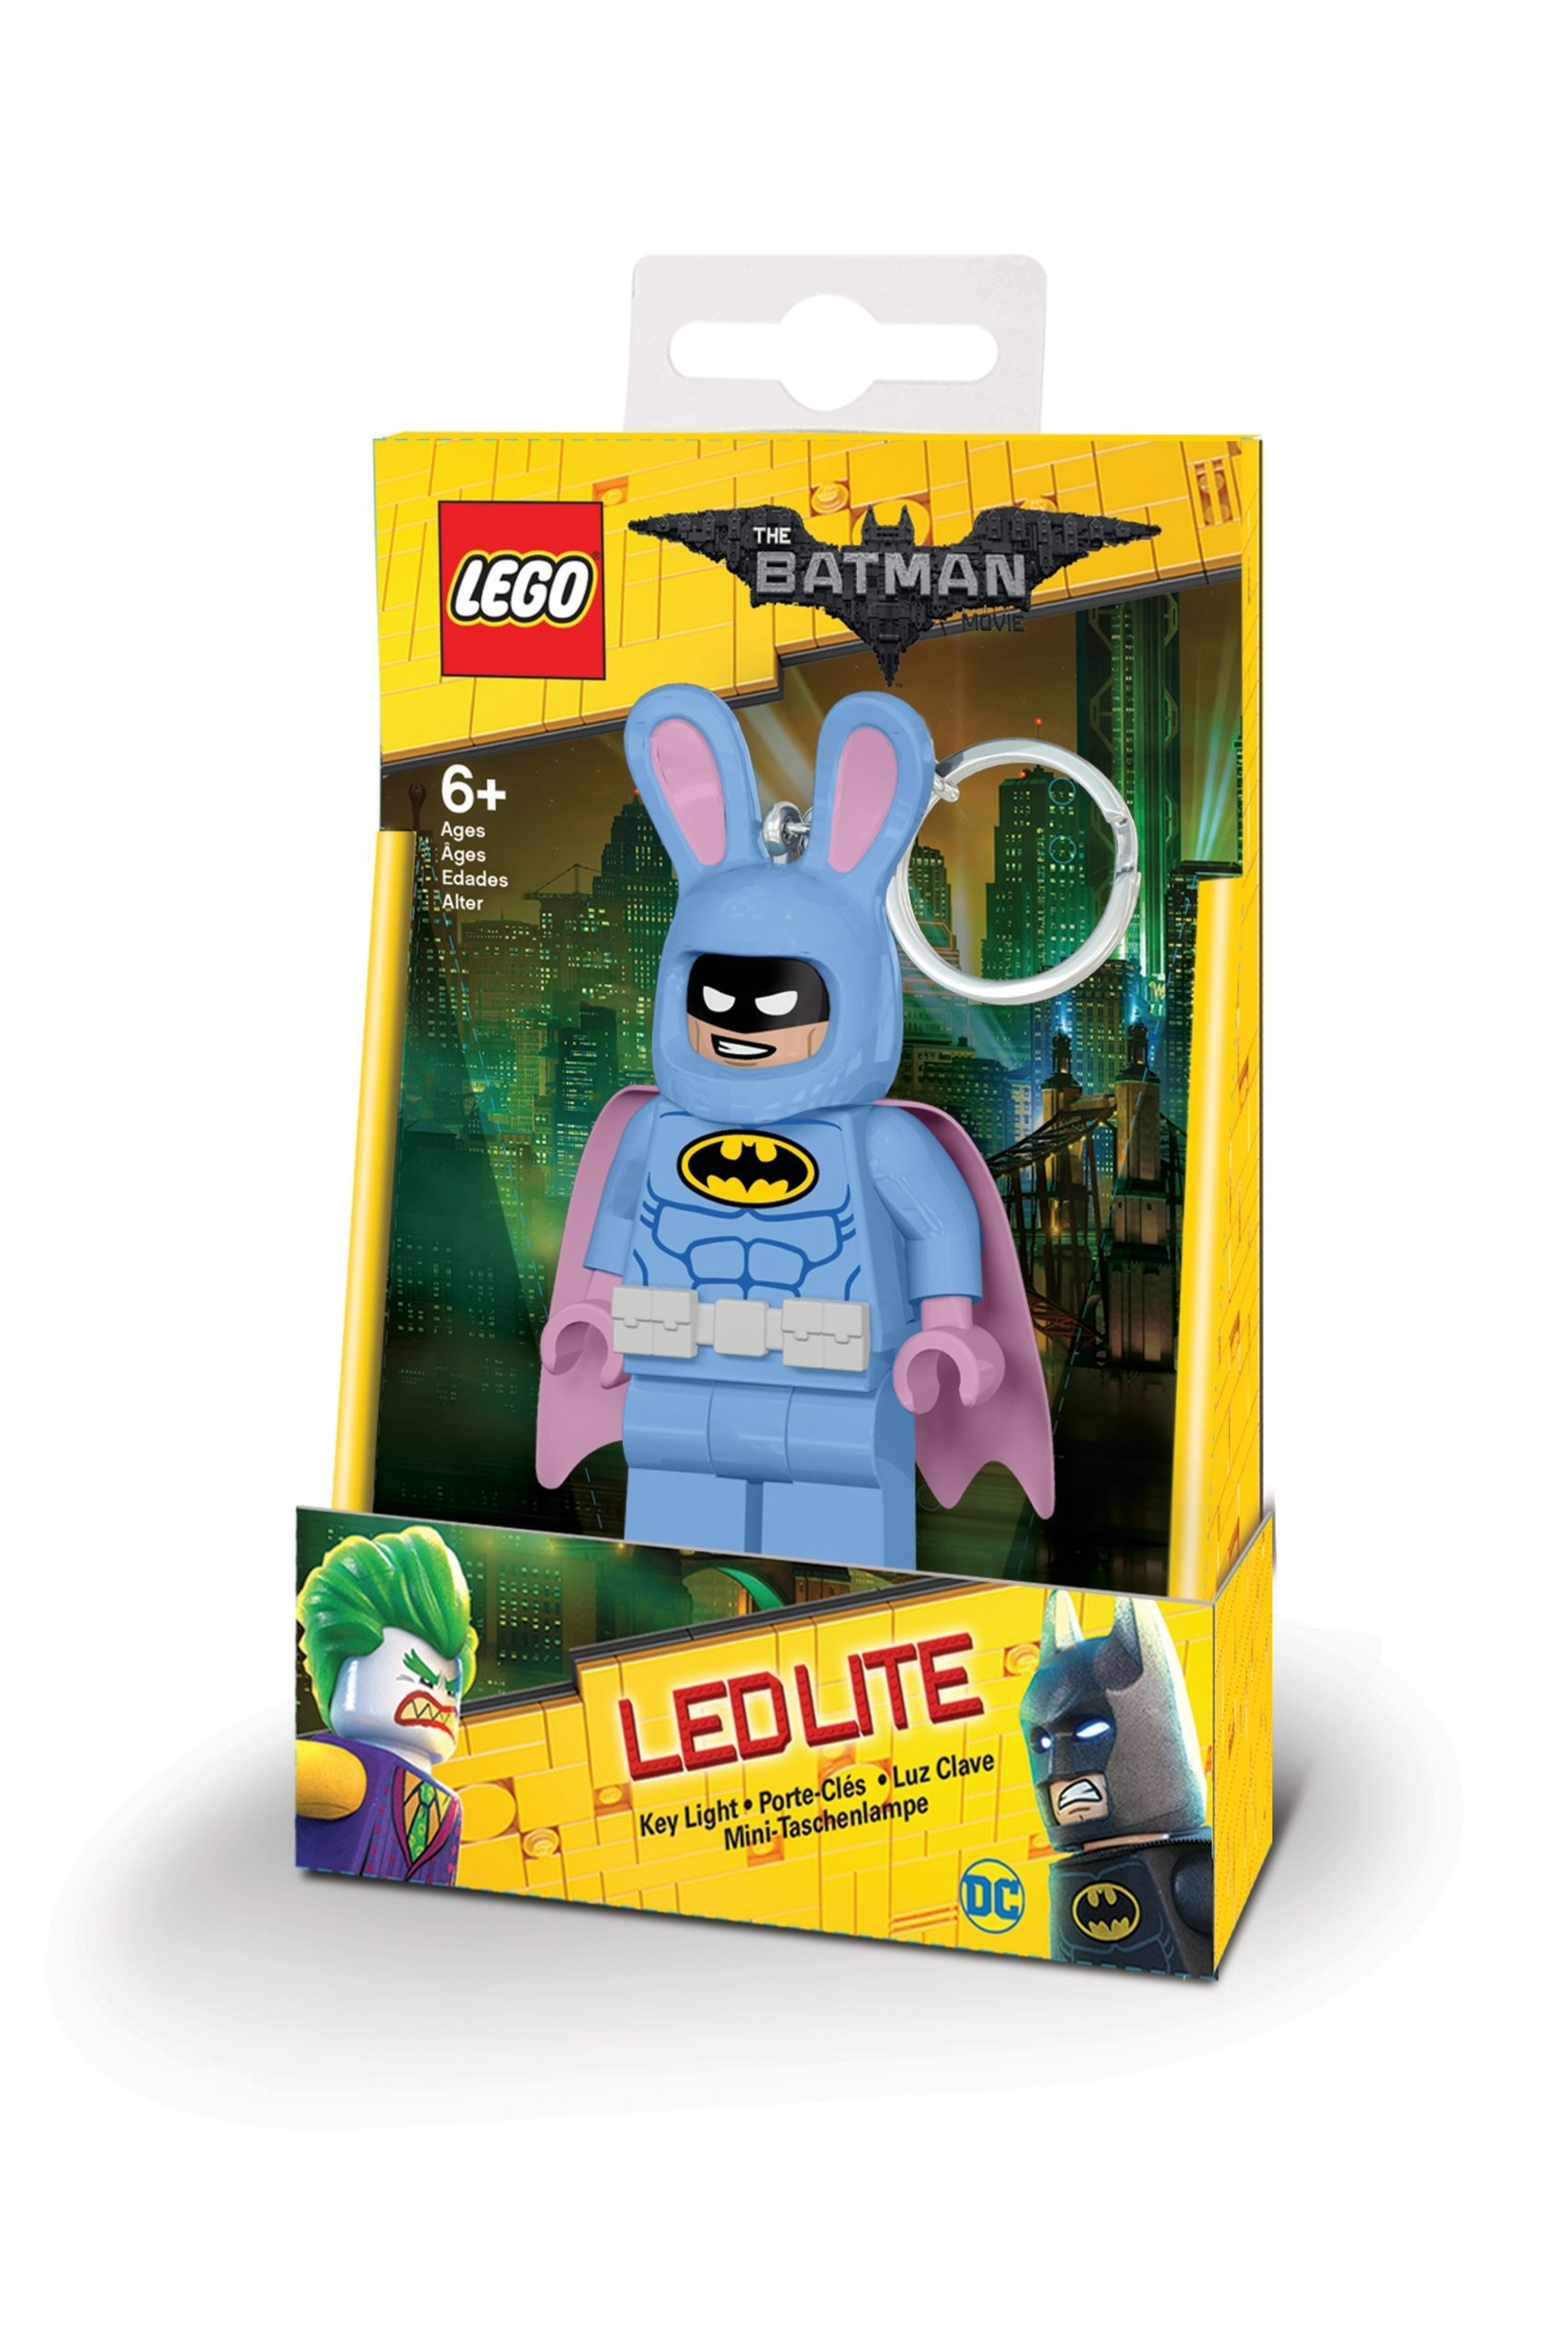 lego 5005317 batman movie easter bunny batman key light scaled